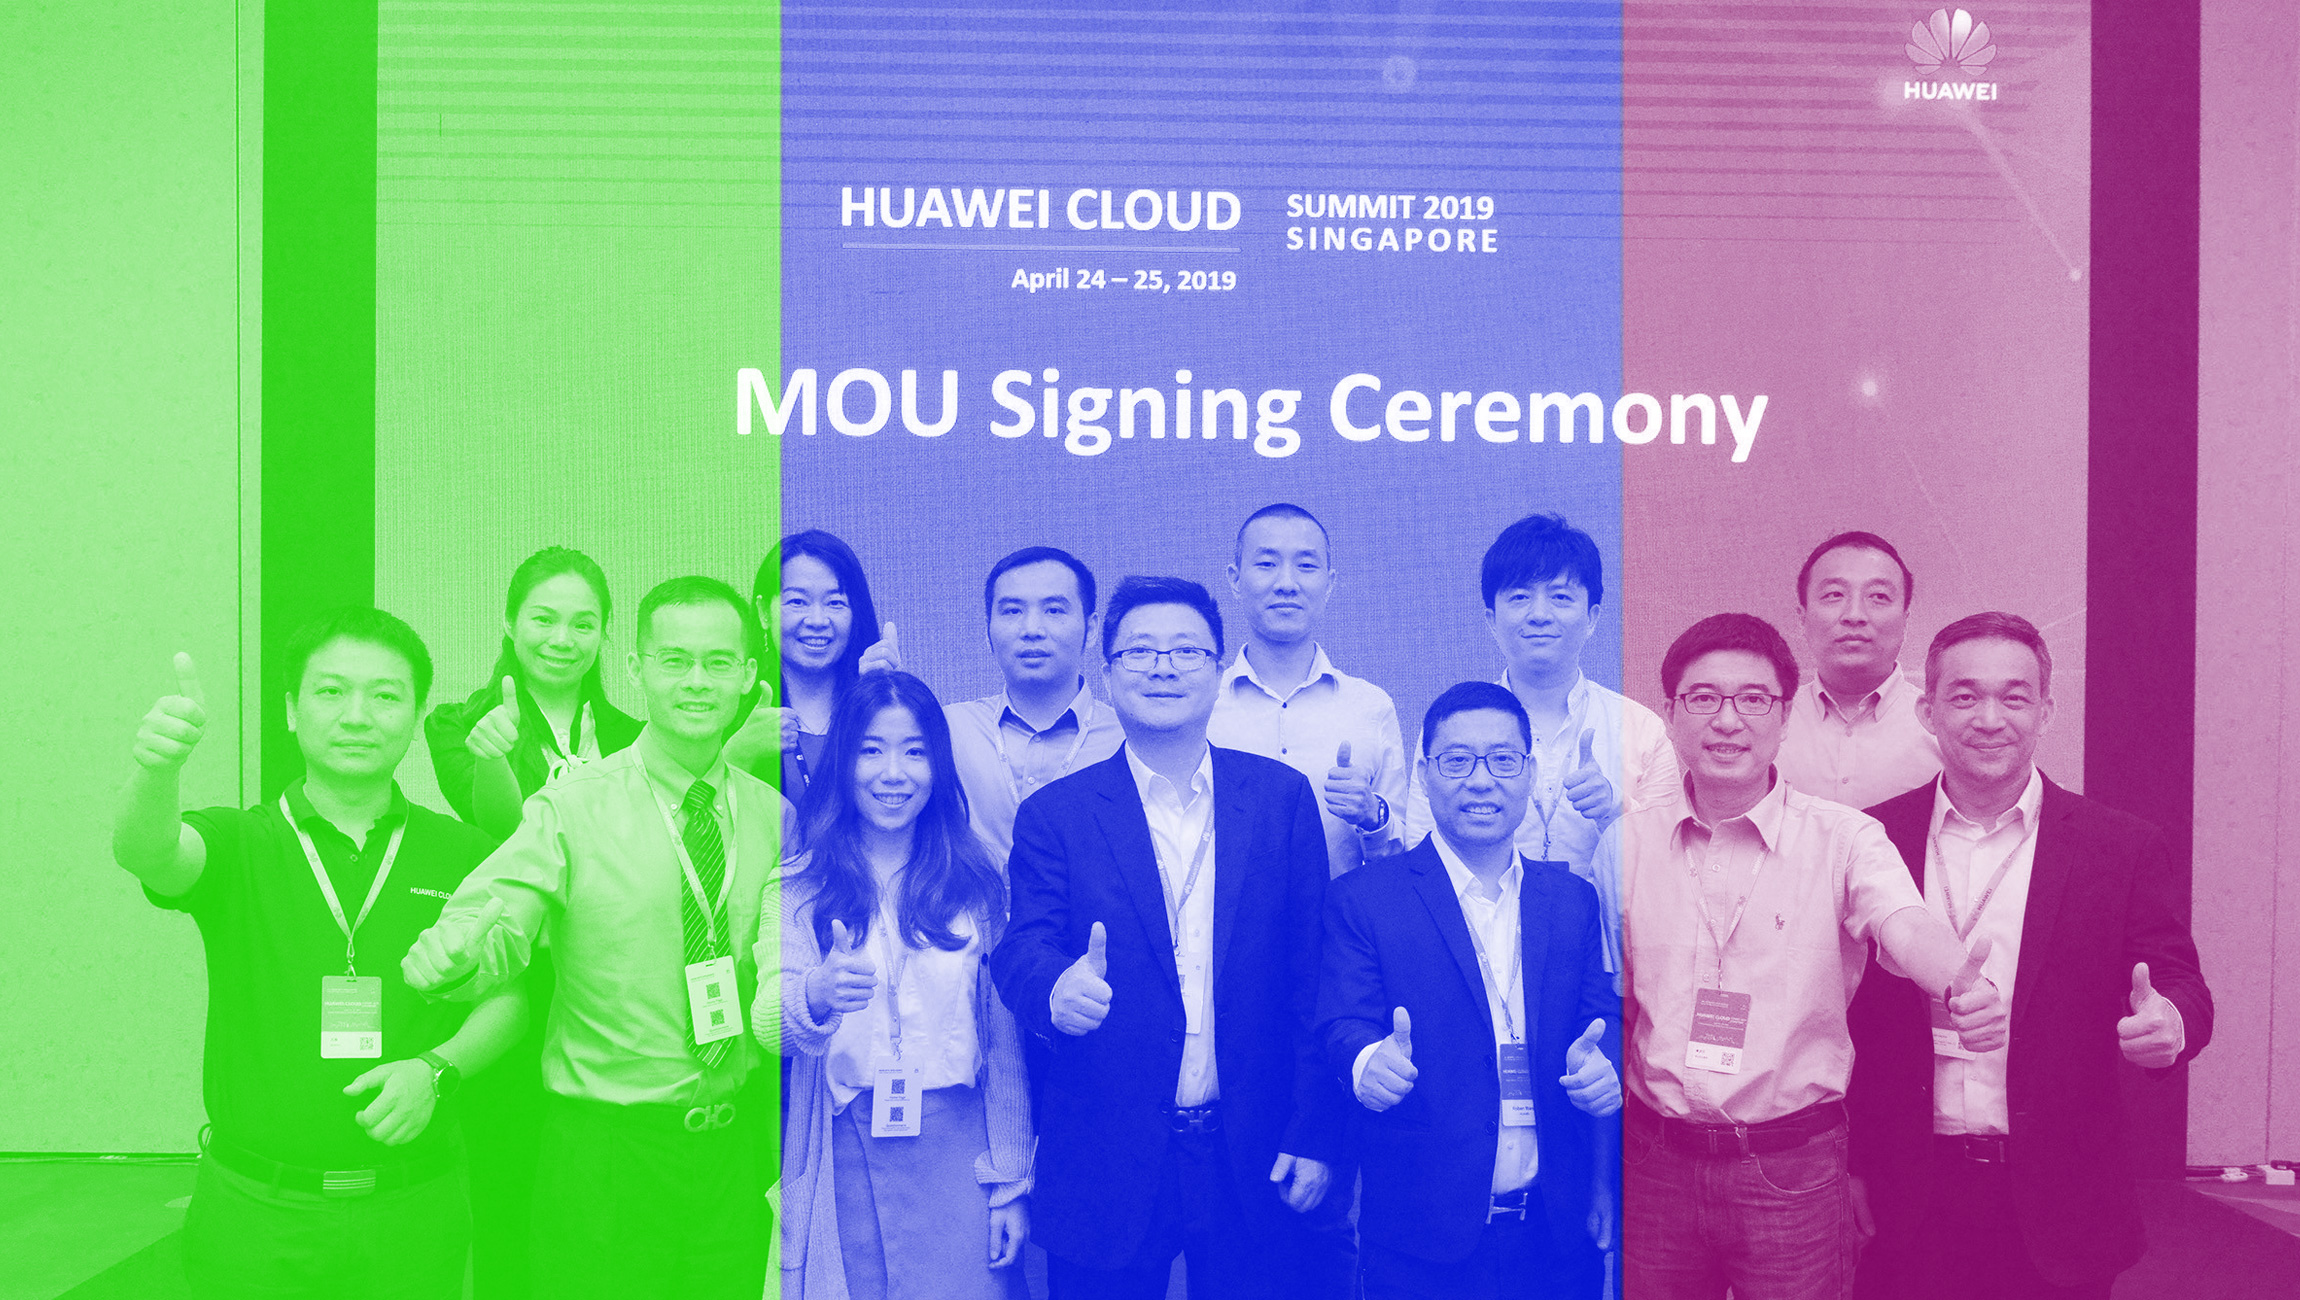 HUAWEI CLOUD Signs MoU with Multiple Companies at the Singapore